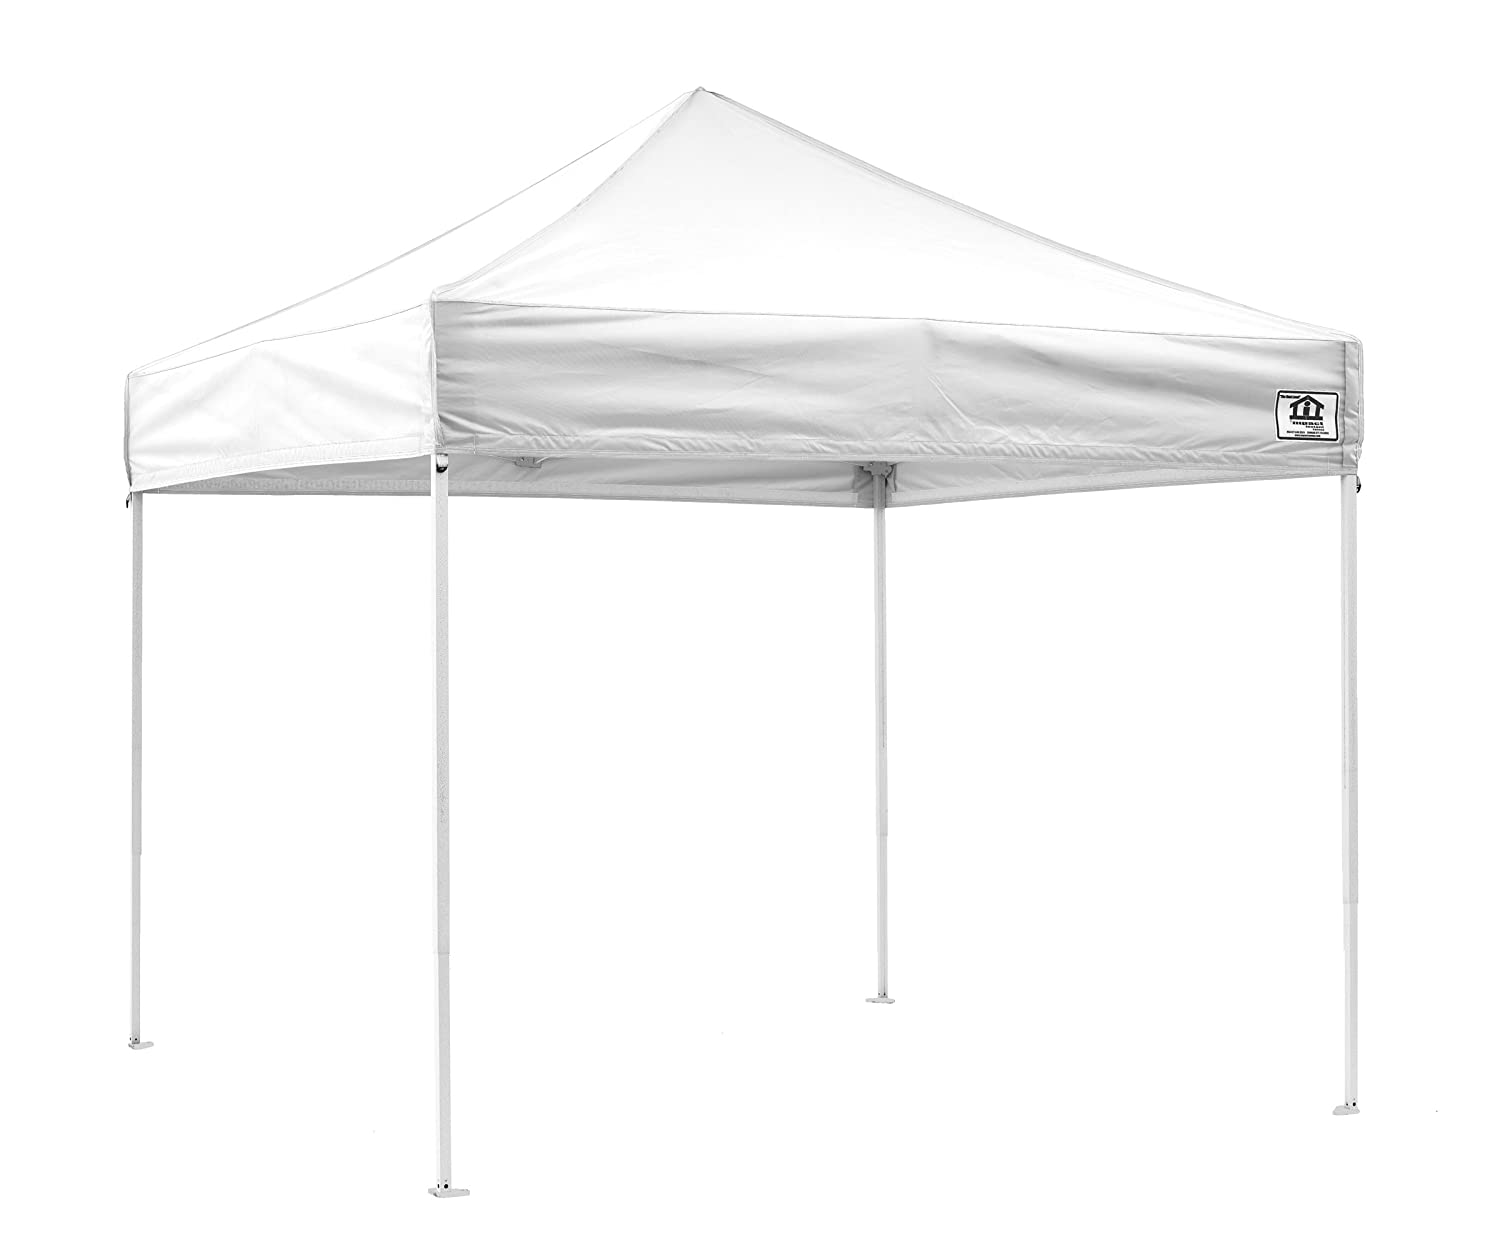 Impact Canopies Easy Pop Up Tent 10x10 Canopy Tent White Amazon.ca Patio Lawn u0026 Garden  sc 1 st  Amazon.ca & Impact Canopies Easy Pop Up Tent 10x10 Canopy Tent White: Amazon.ca ...